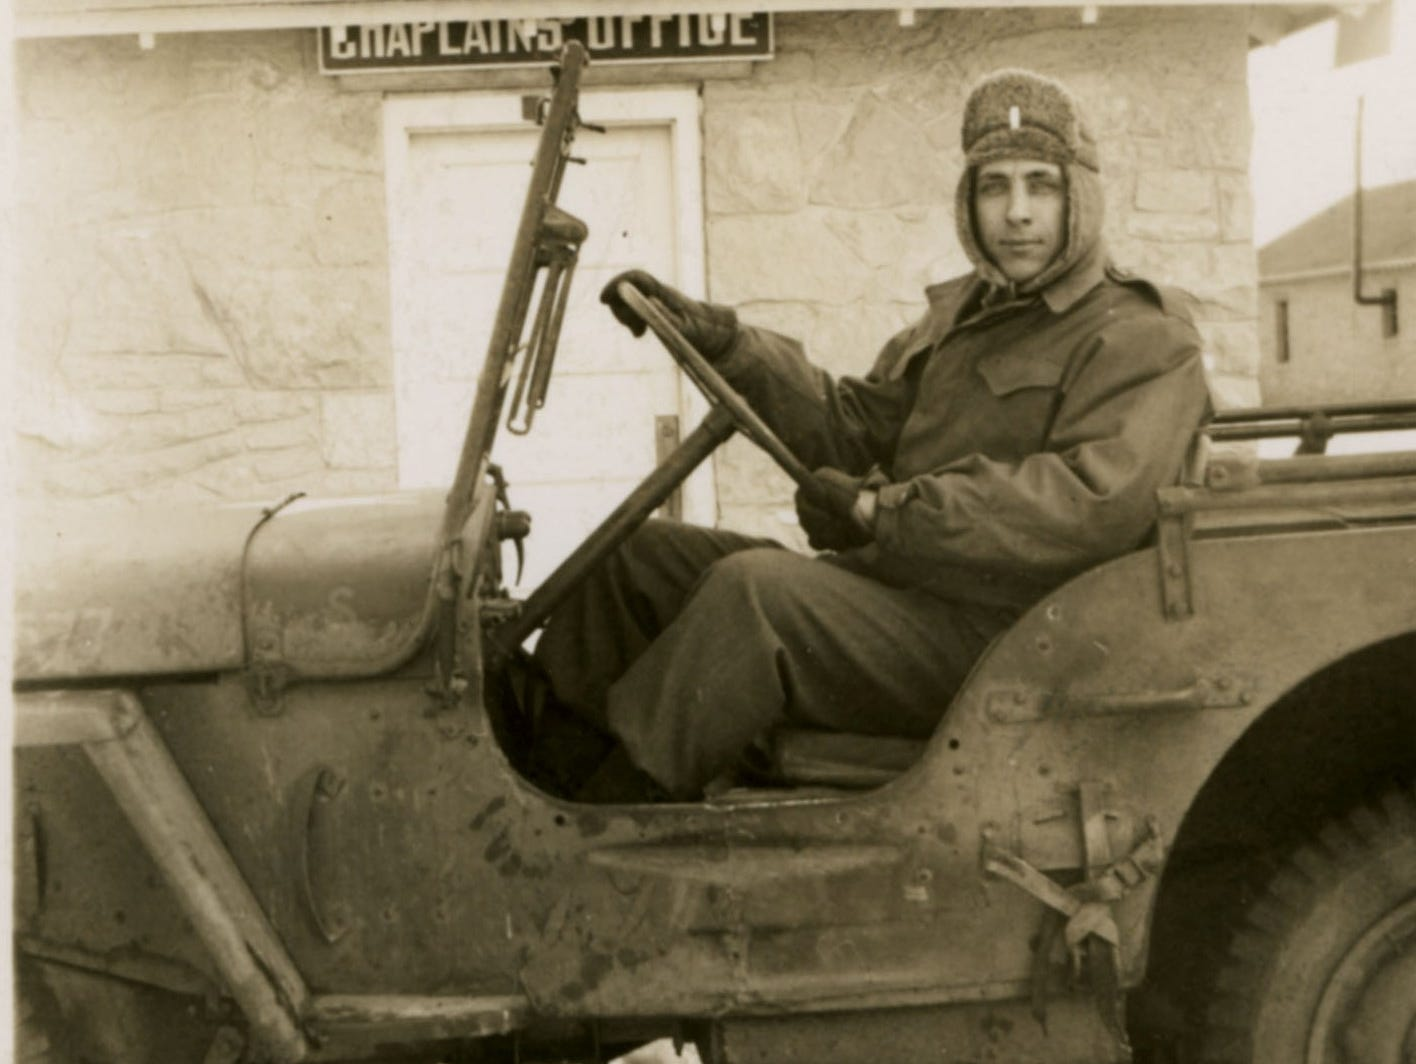 At 23, John David Laida was the youngest chaplain in the Army at the time he signed up for duty during World War II.